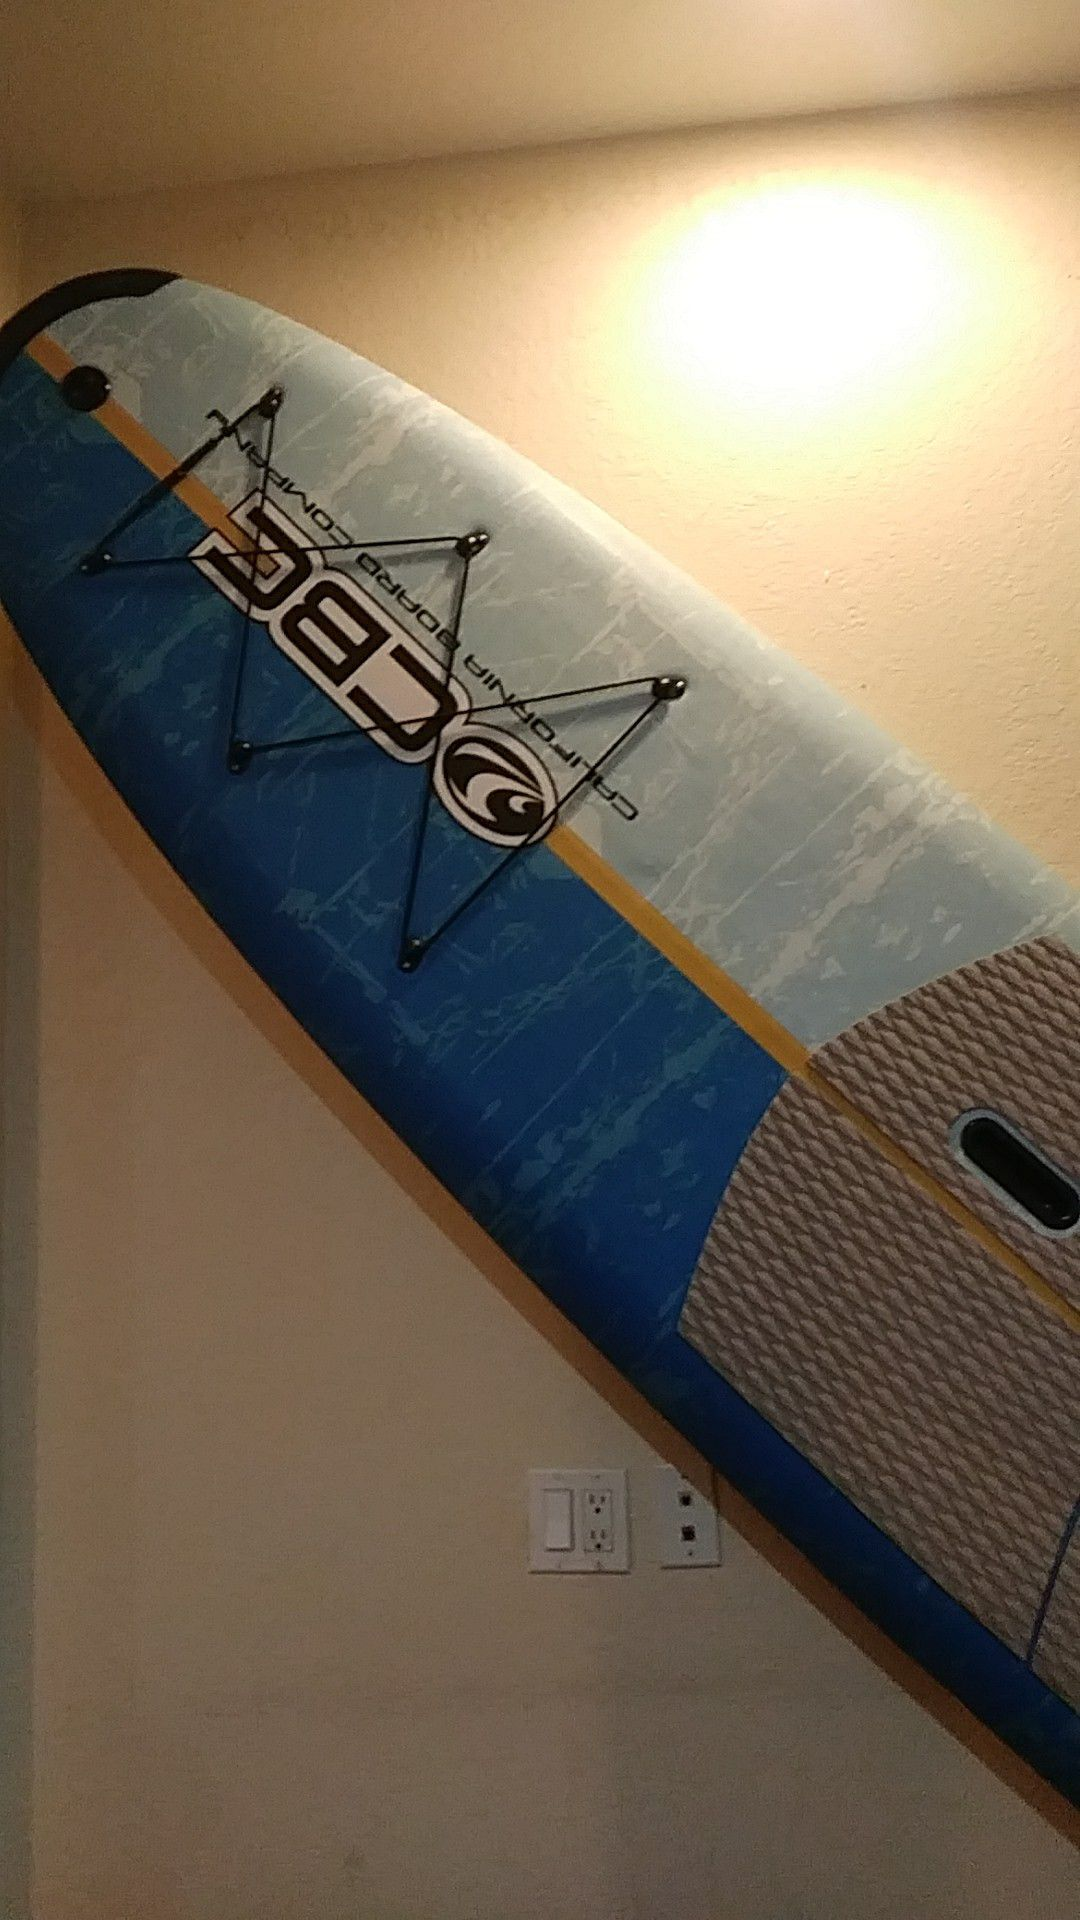 California board company. 10 six edition. I have used it a few times. But, it's still in great condition